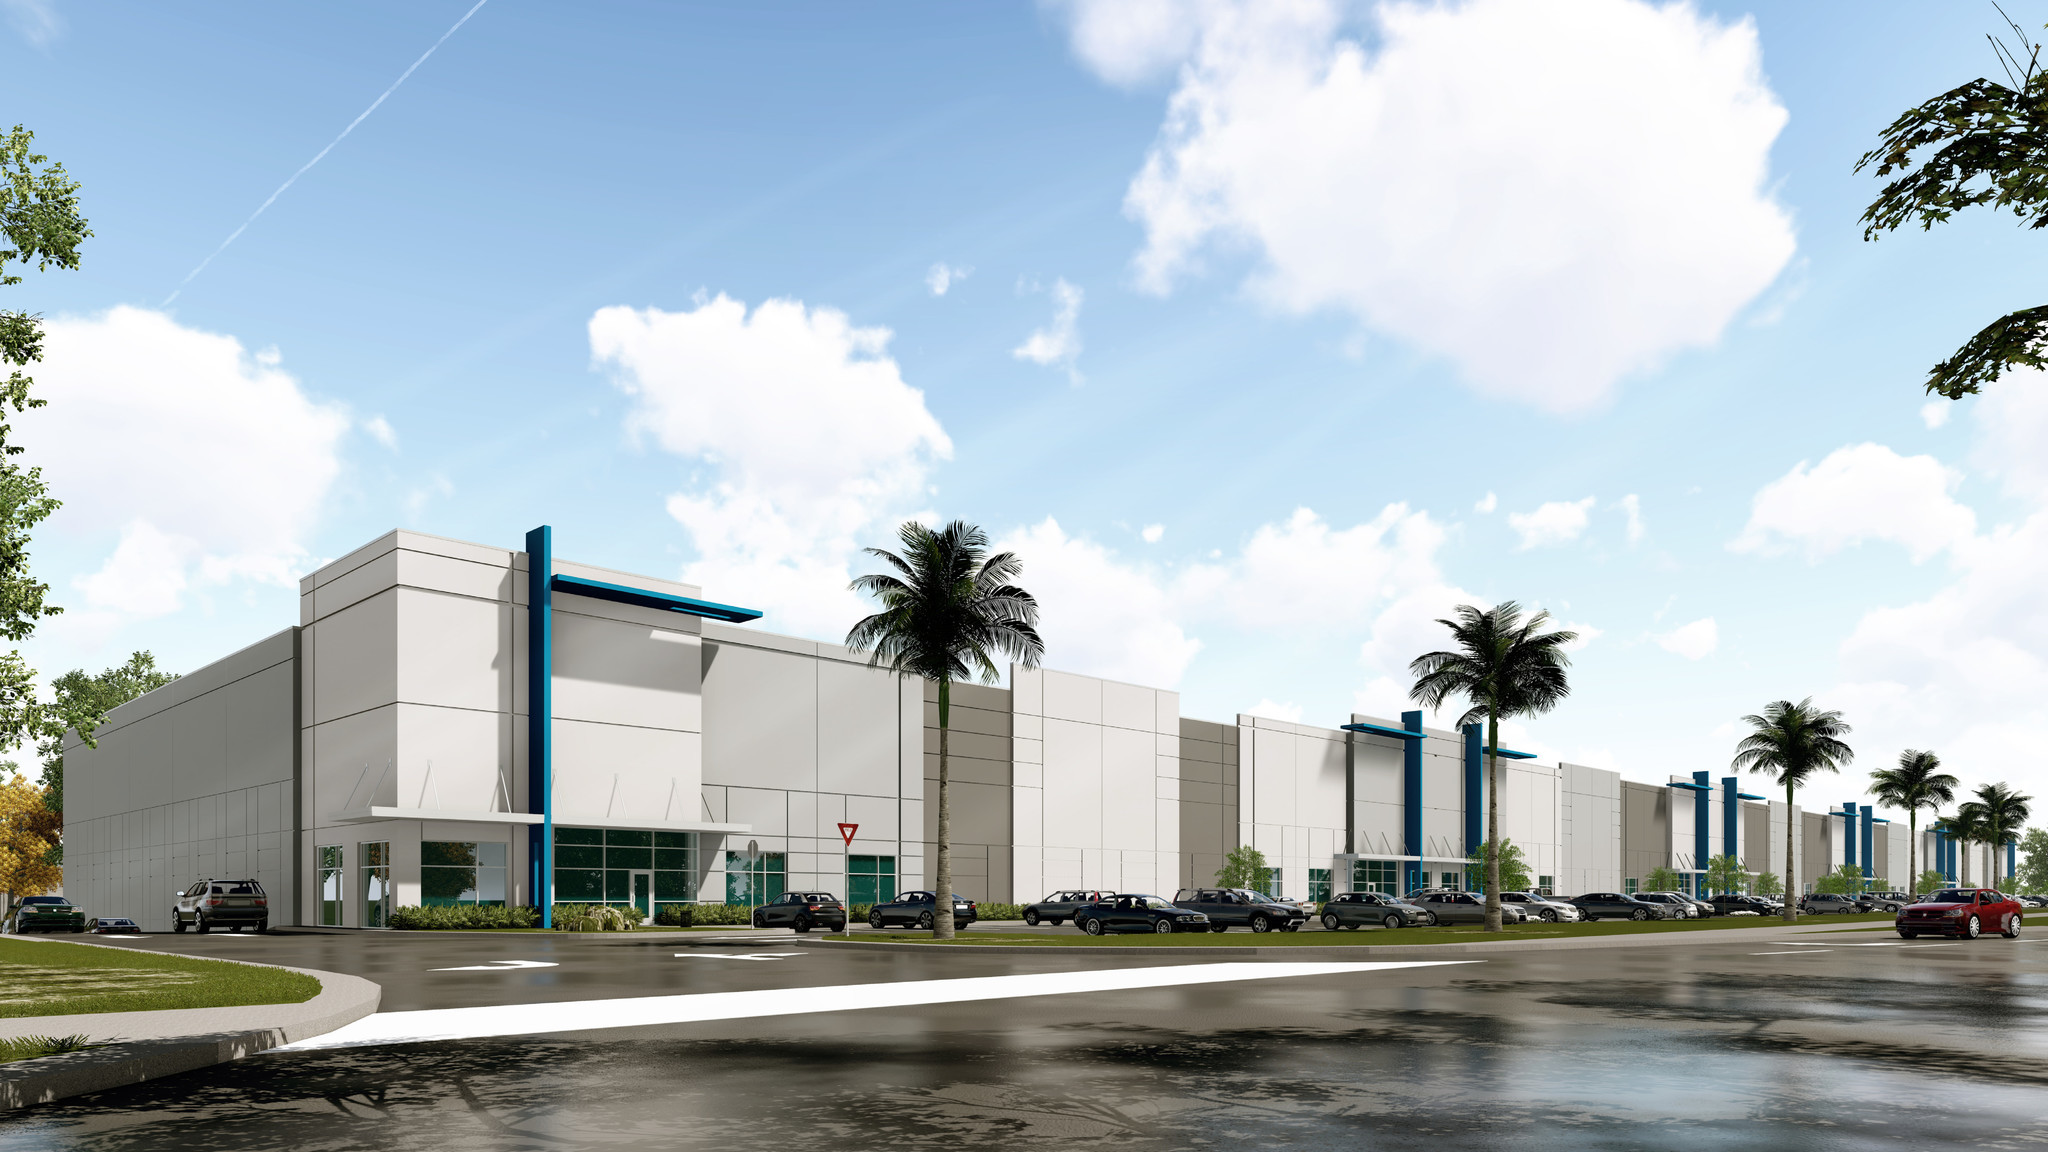 City Furniture To Open Third Local In Concert With Ocoee Distribution Center Growthspotter